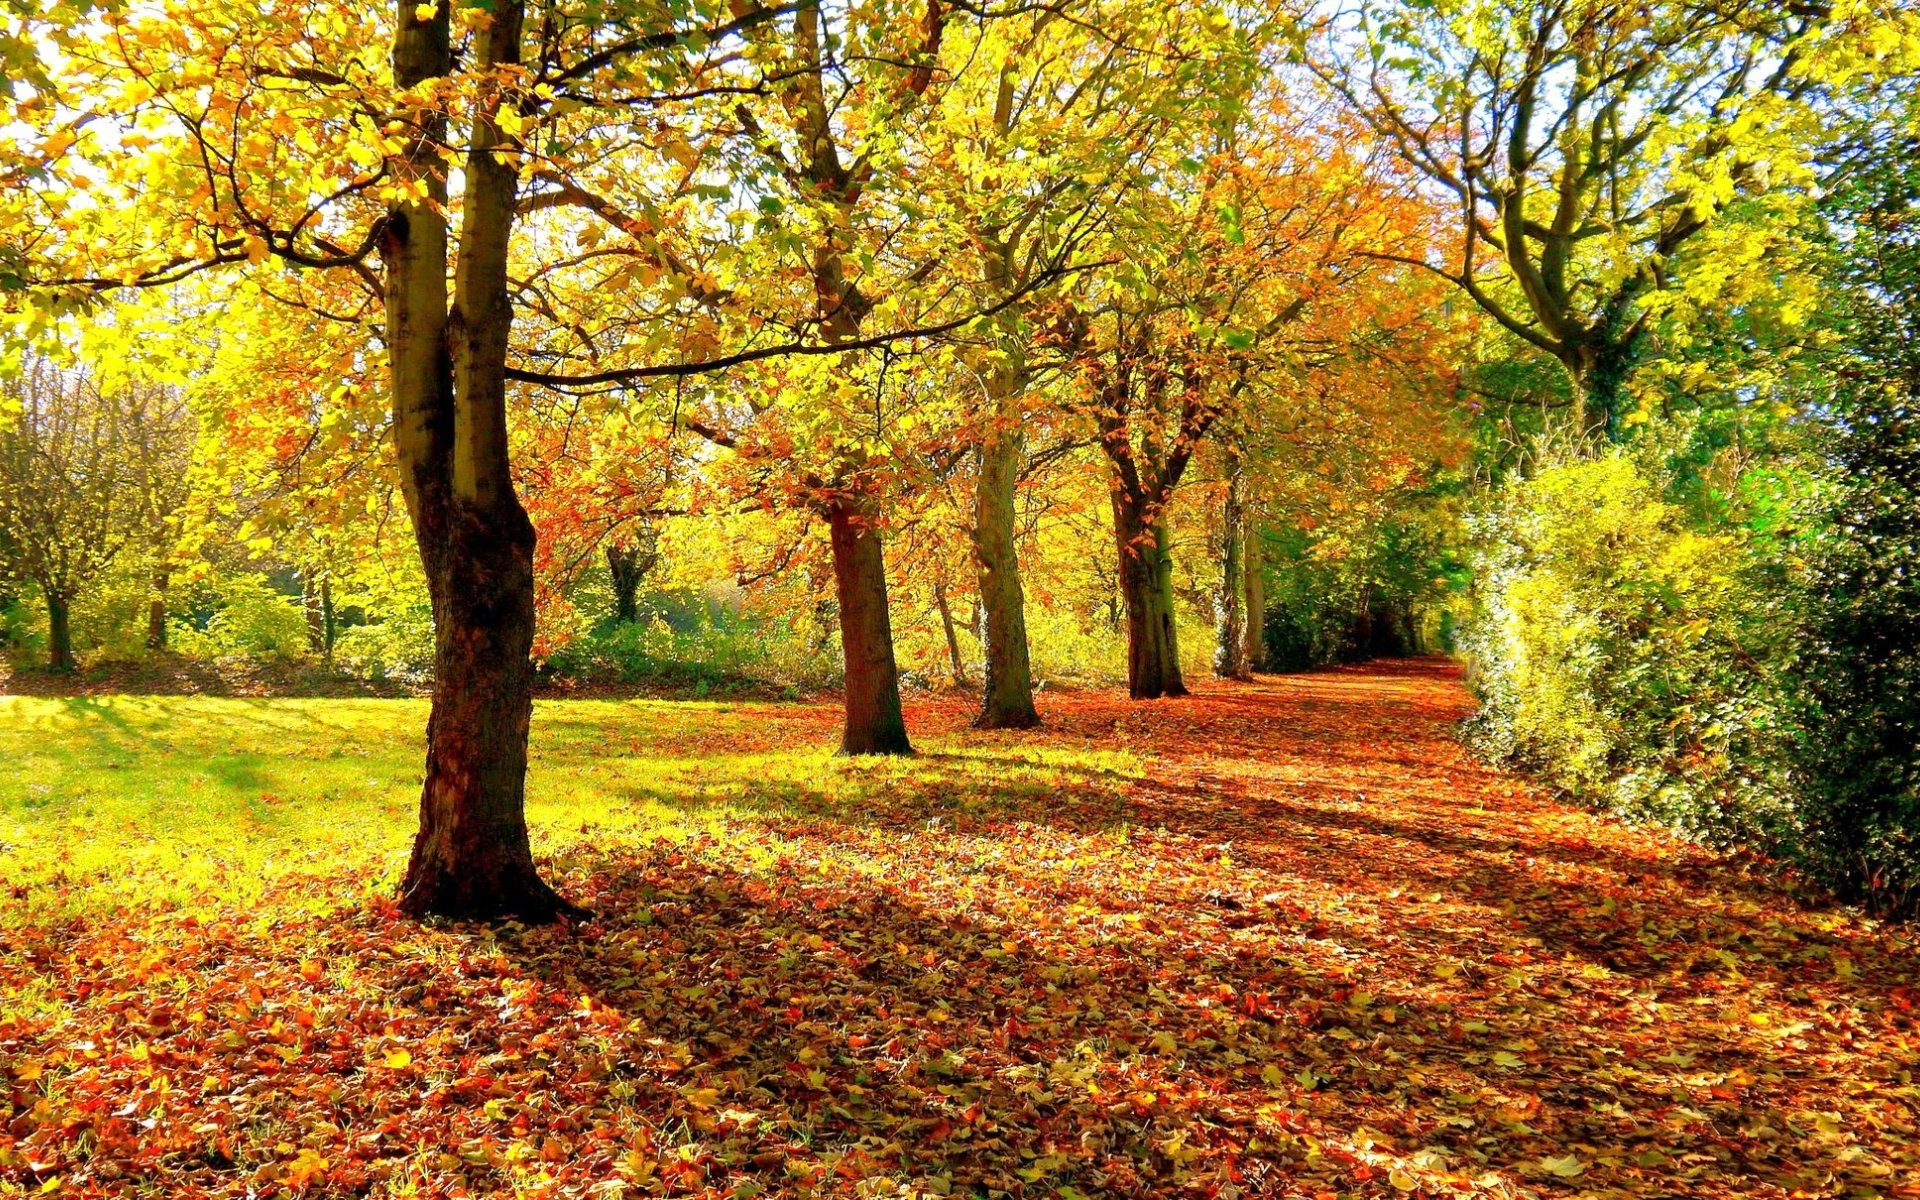 In the autumn forest wallpapers and images - wallpapers, pictures ...